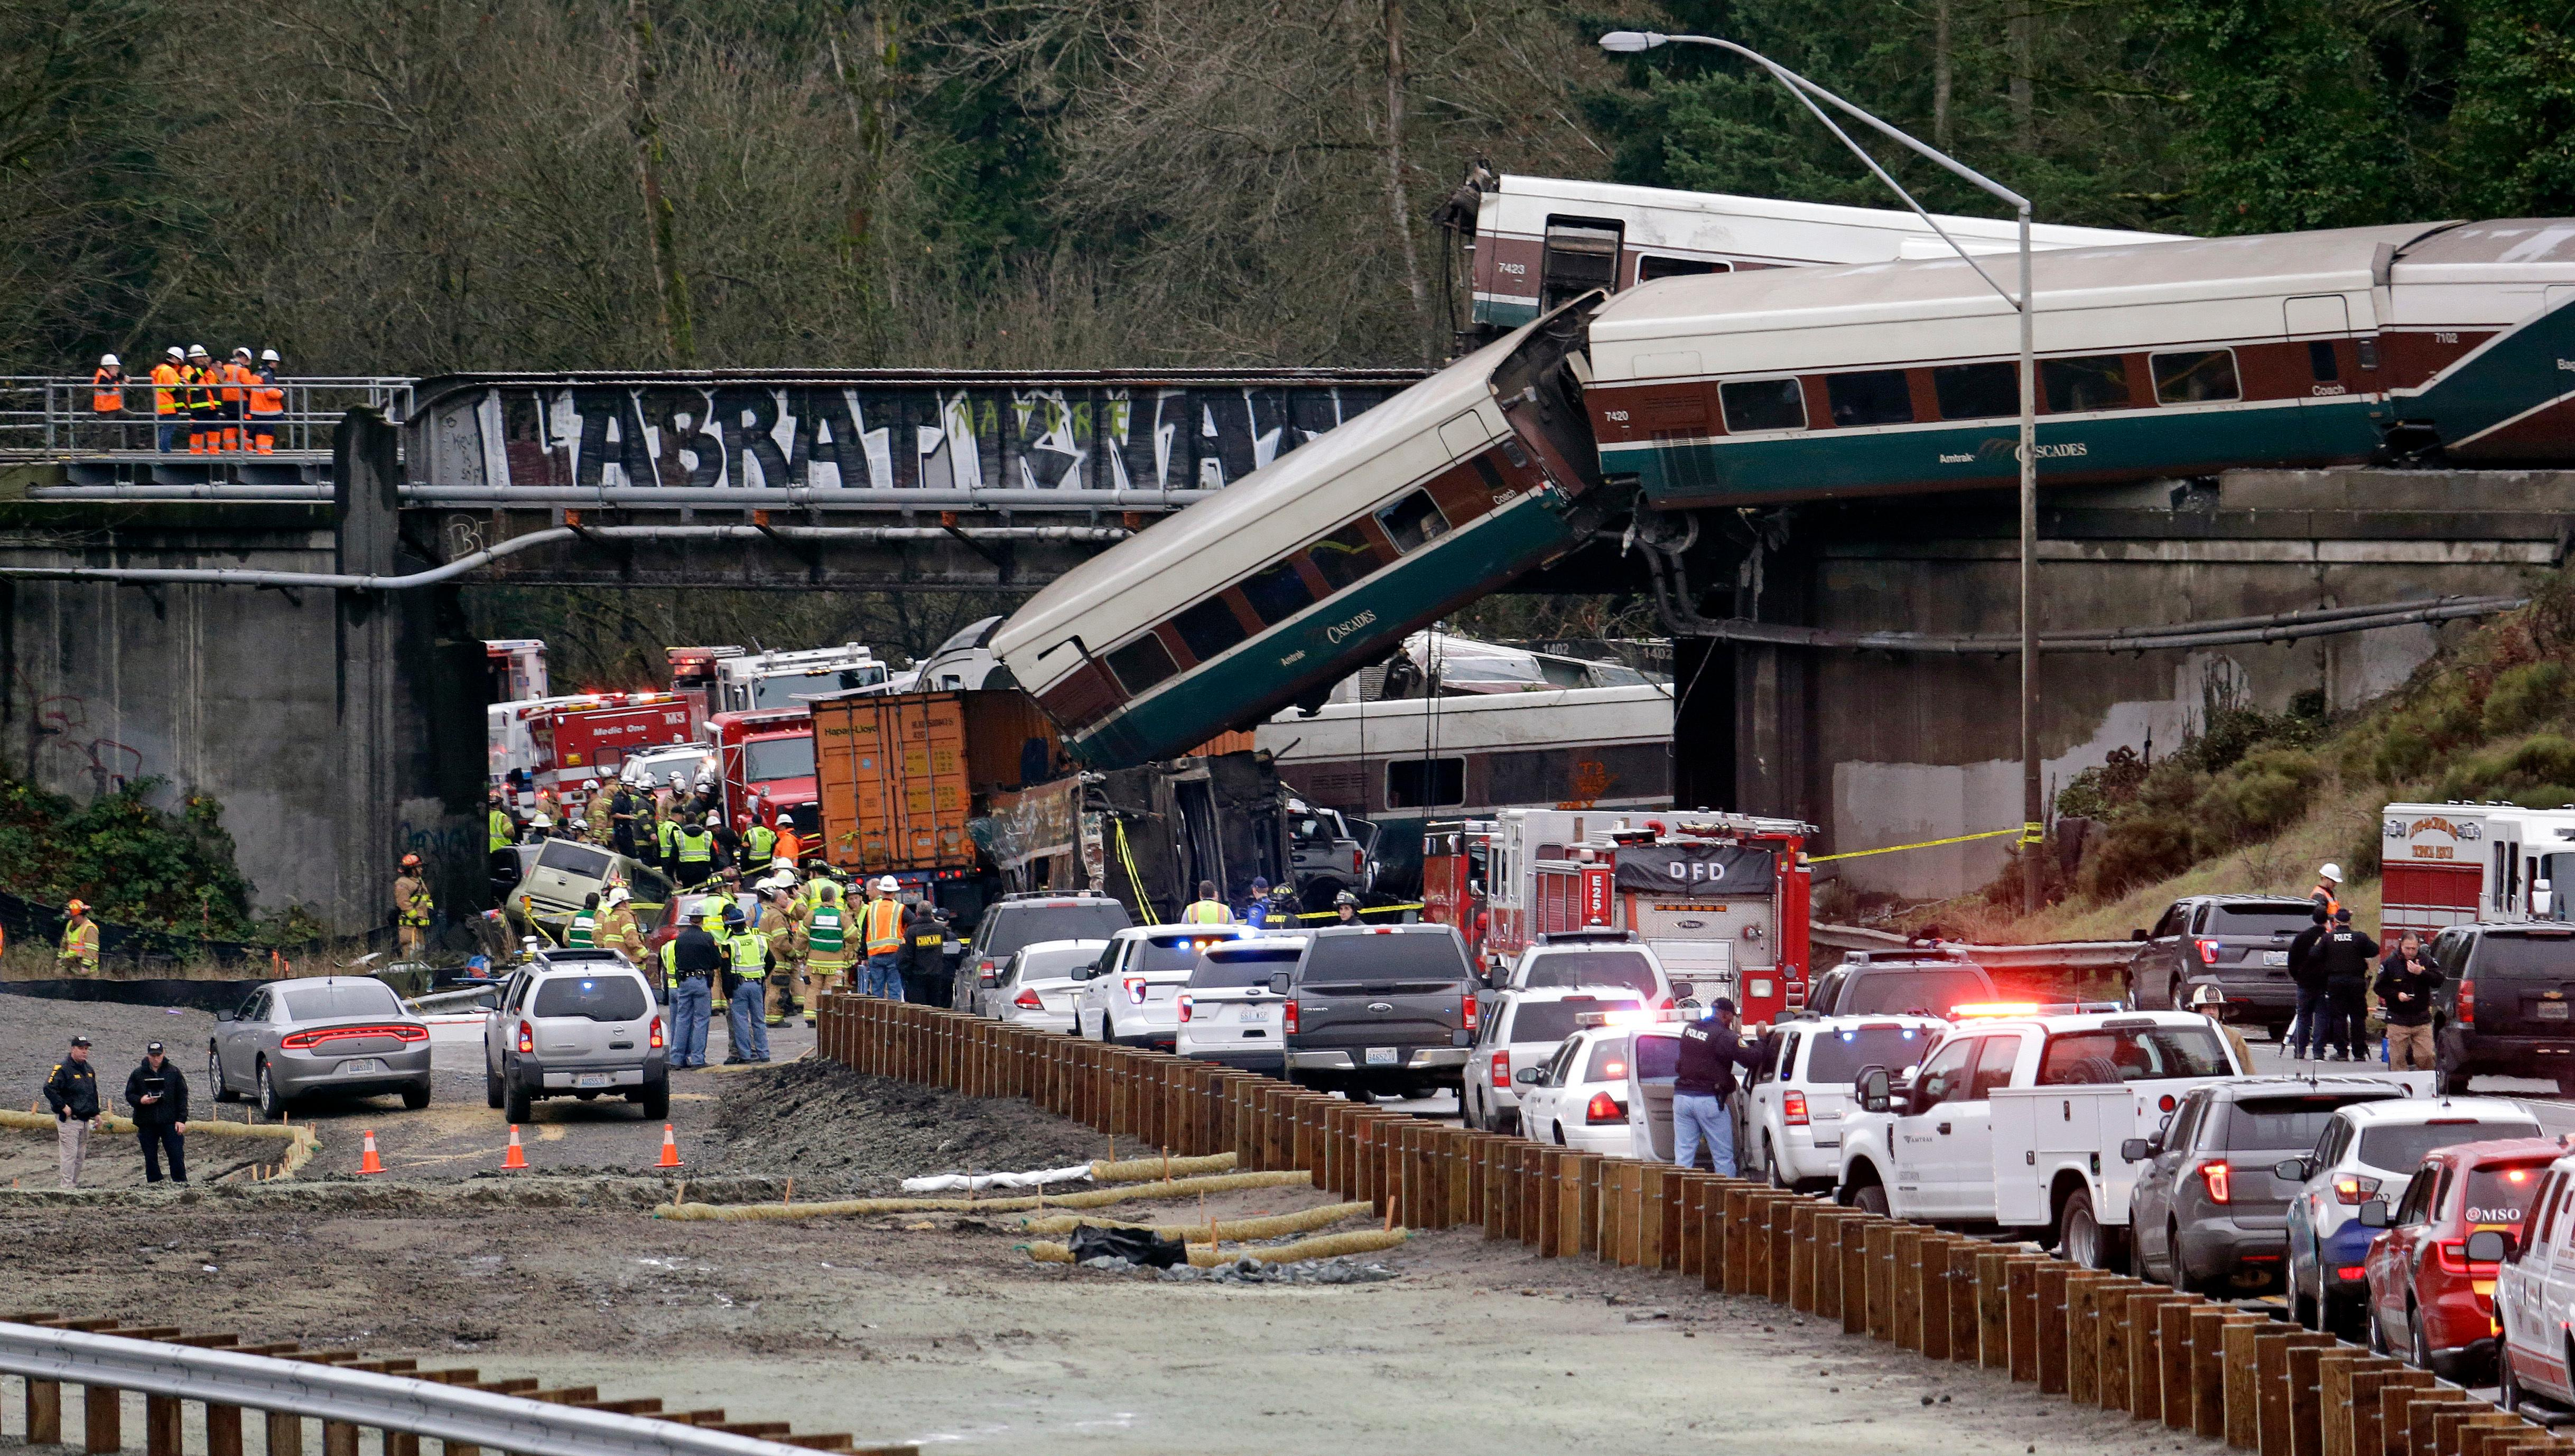 Cars from an Amtrak train lay spilled onto Interstate 5 below as some remain on the tracks above Monday, Dec. 18, 2017, in DuPont, Wash. The Amtrak train making the first-ever run along a faster new route hurtled off the overpass Monday near Tacoma and spilled some of its cars onto the highway below, killing some people, authorities said. Seventy-eight passengers and five crew members were aboard when the train moving at more than 80 mph derailed about 40 miles south of Seattle before 8 a.m., Amtrak said. (AP Photo/Elaine Thompson)